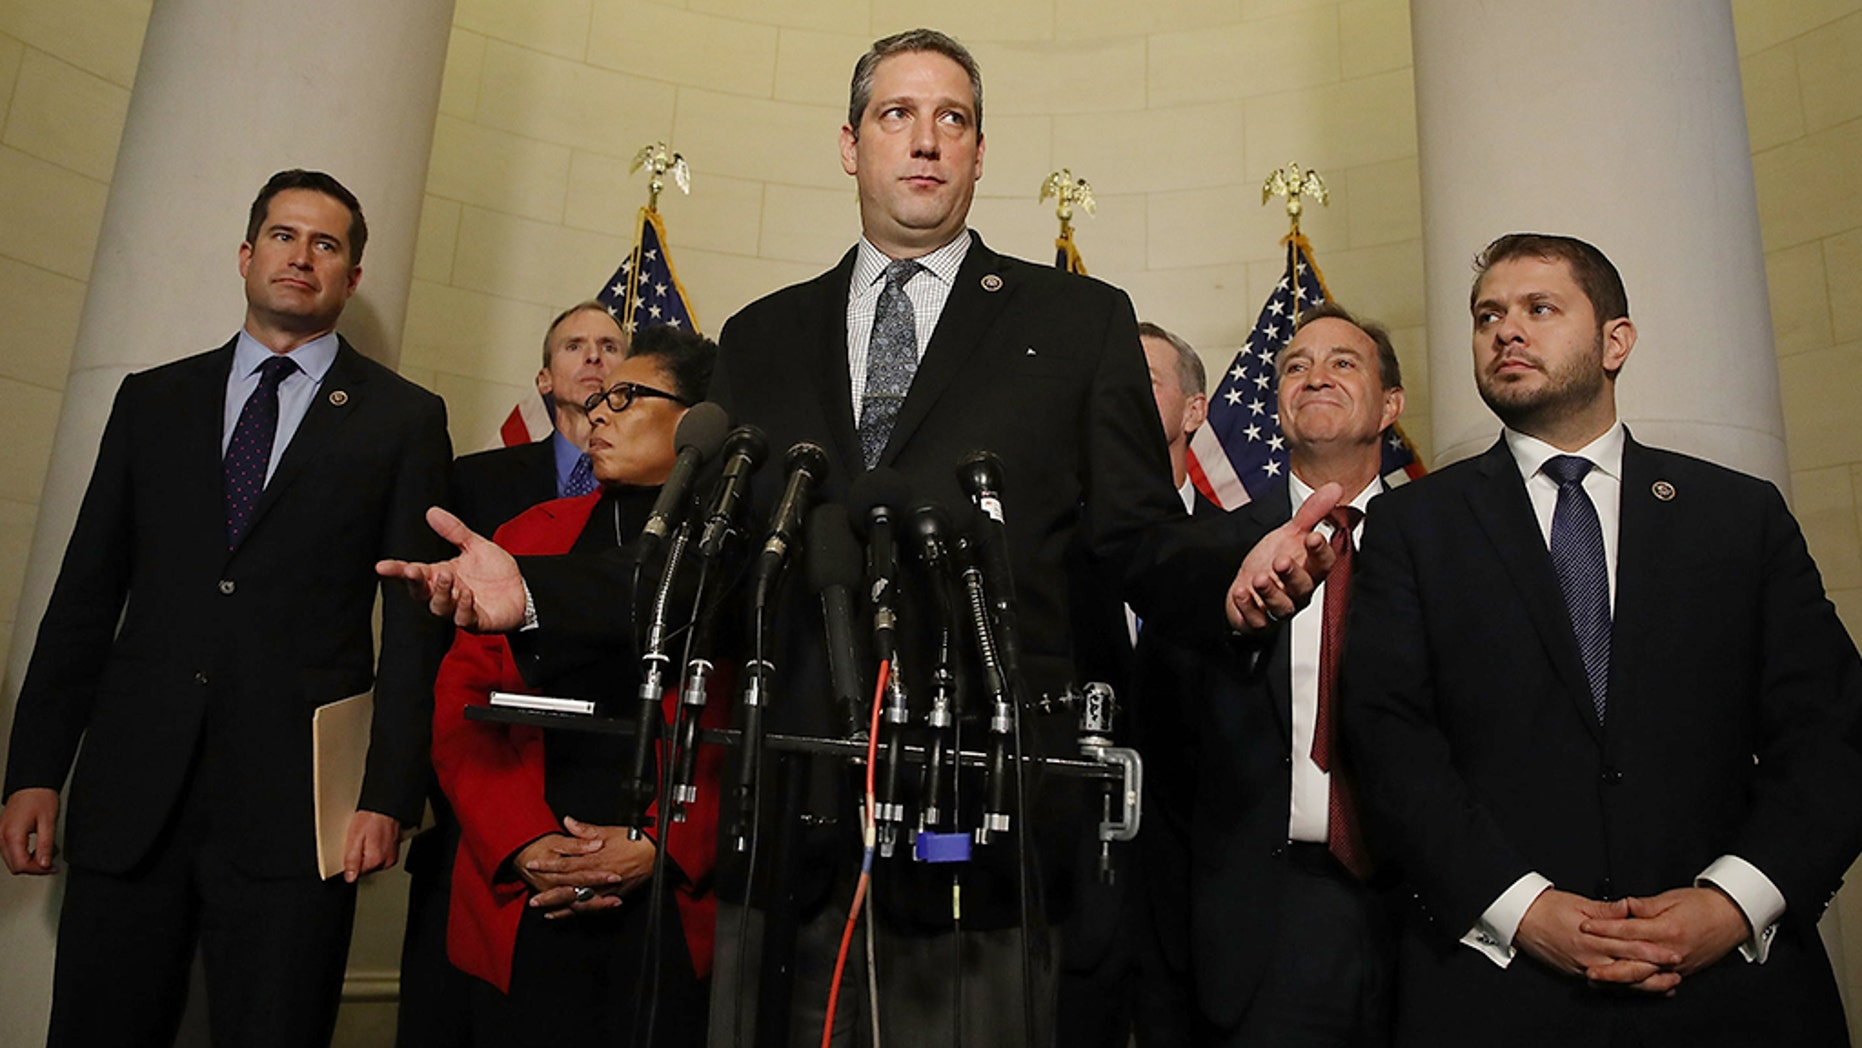 Will Tim Ryan run for president?